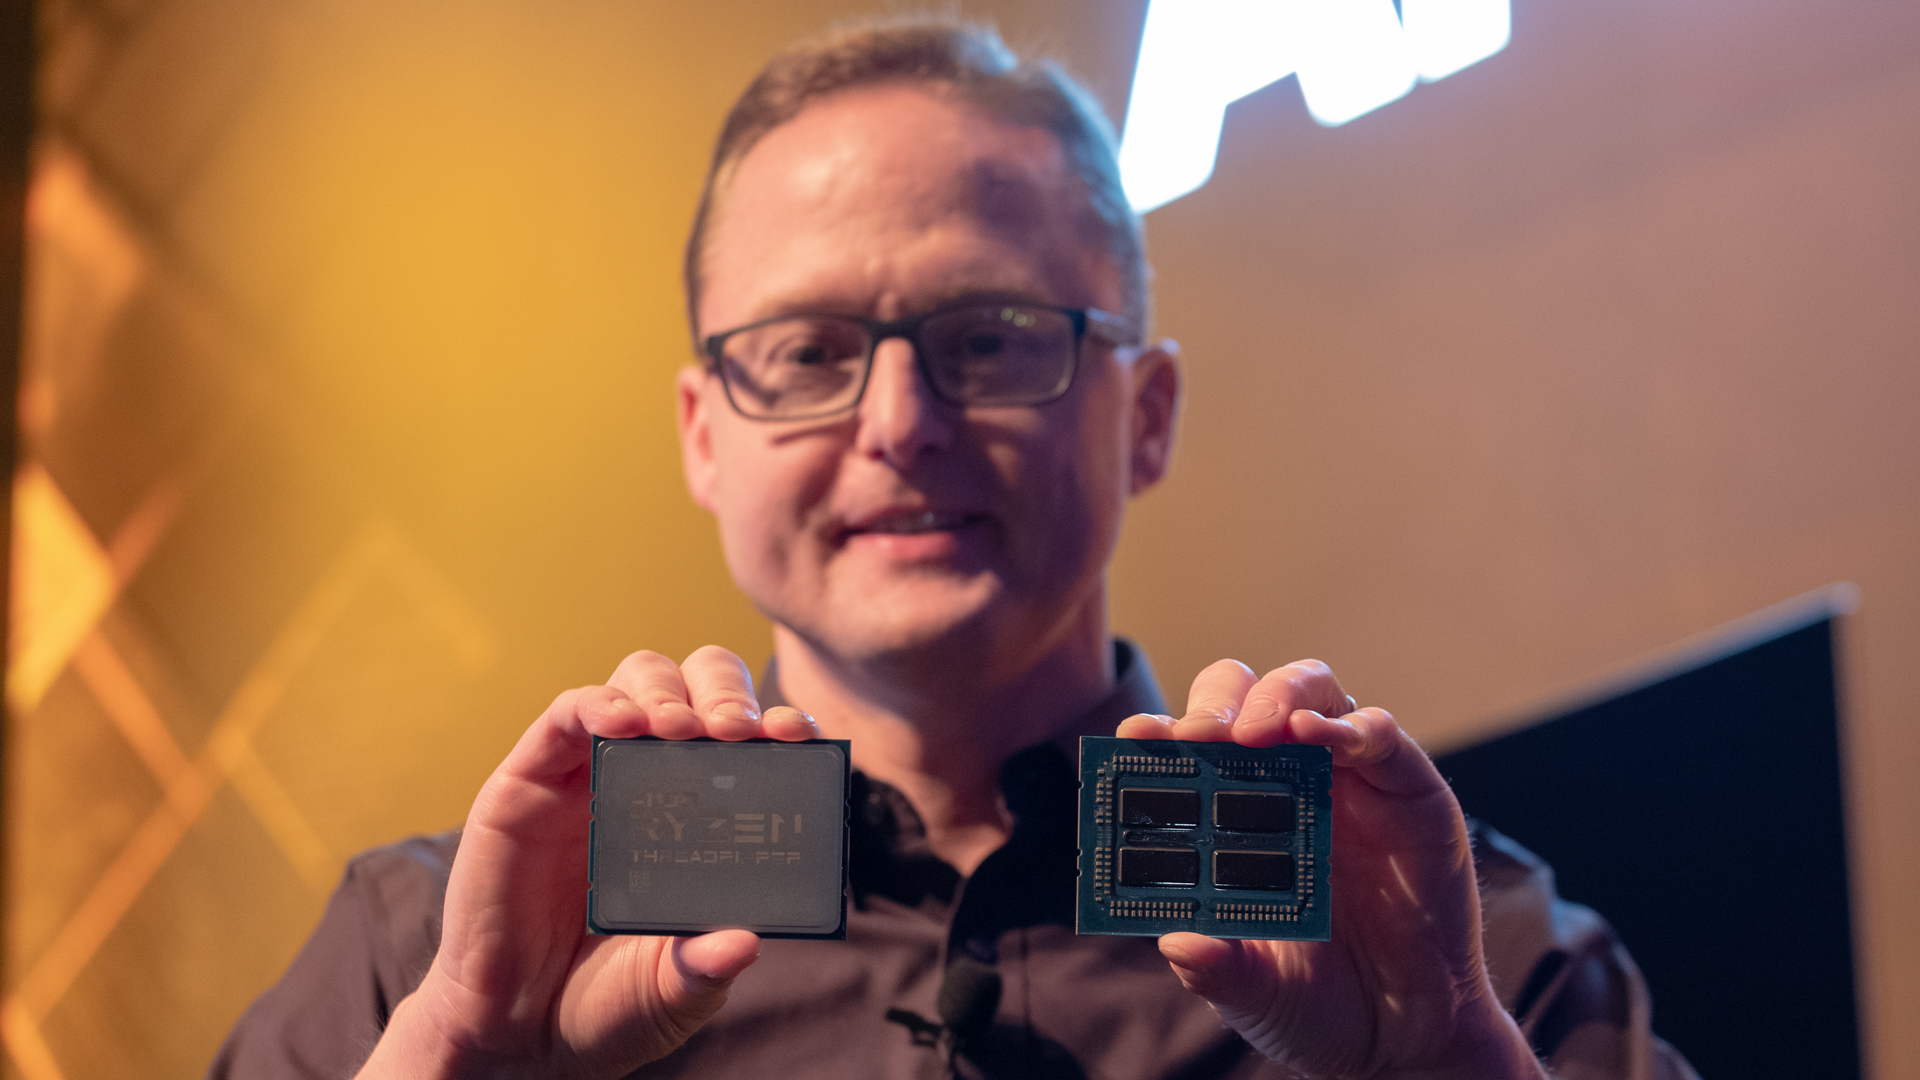 AMD Ryzen Threadripper 3rd Generation